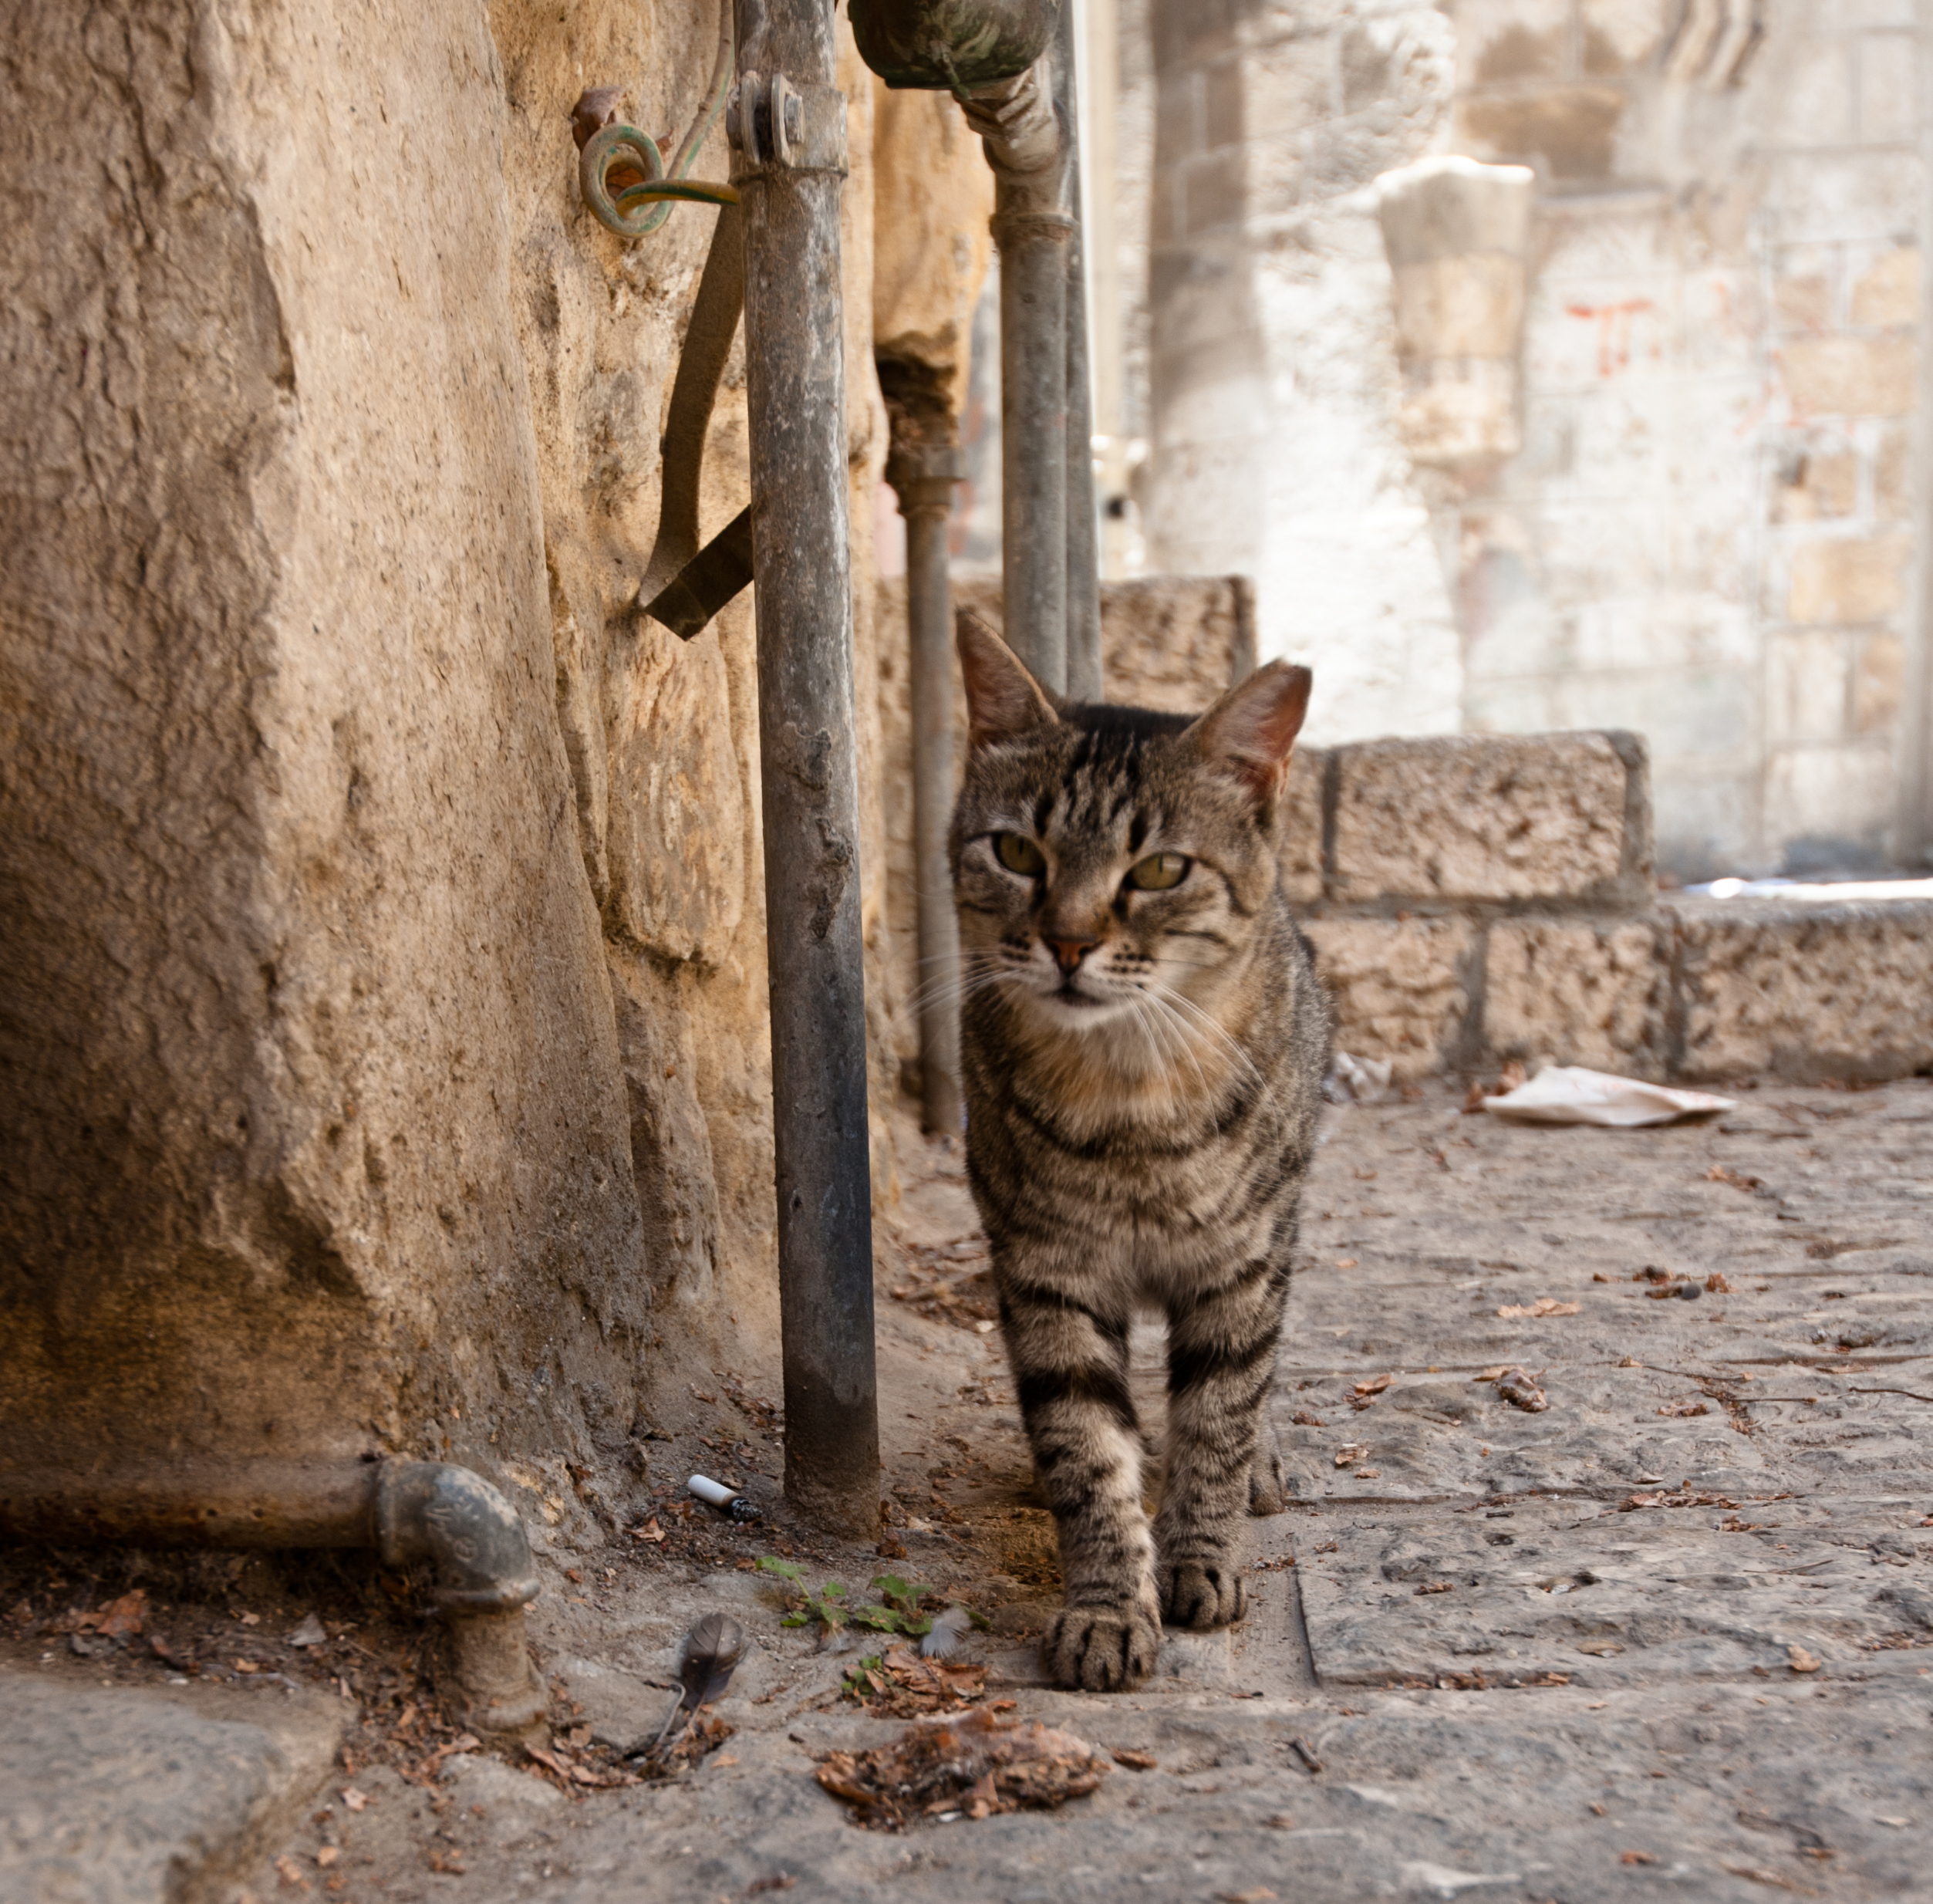 Alley Cat Cat Food Causing Health Problems